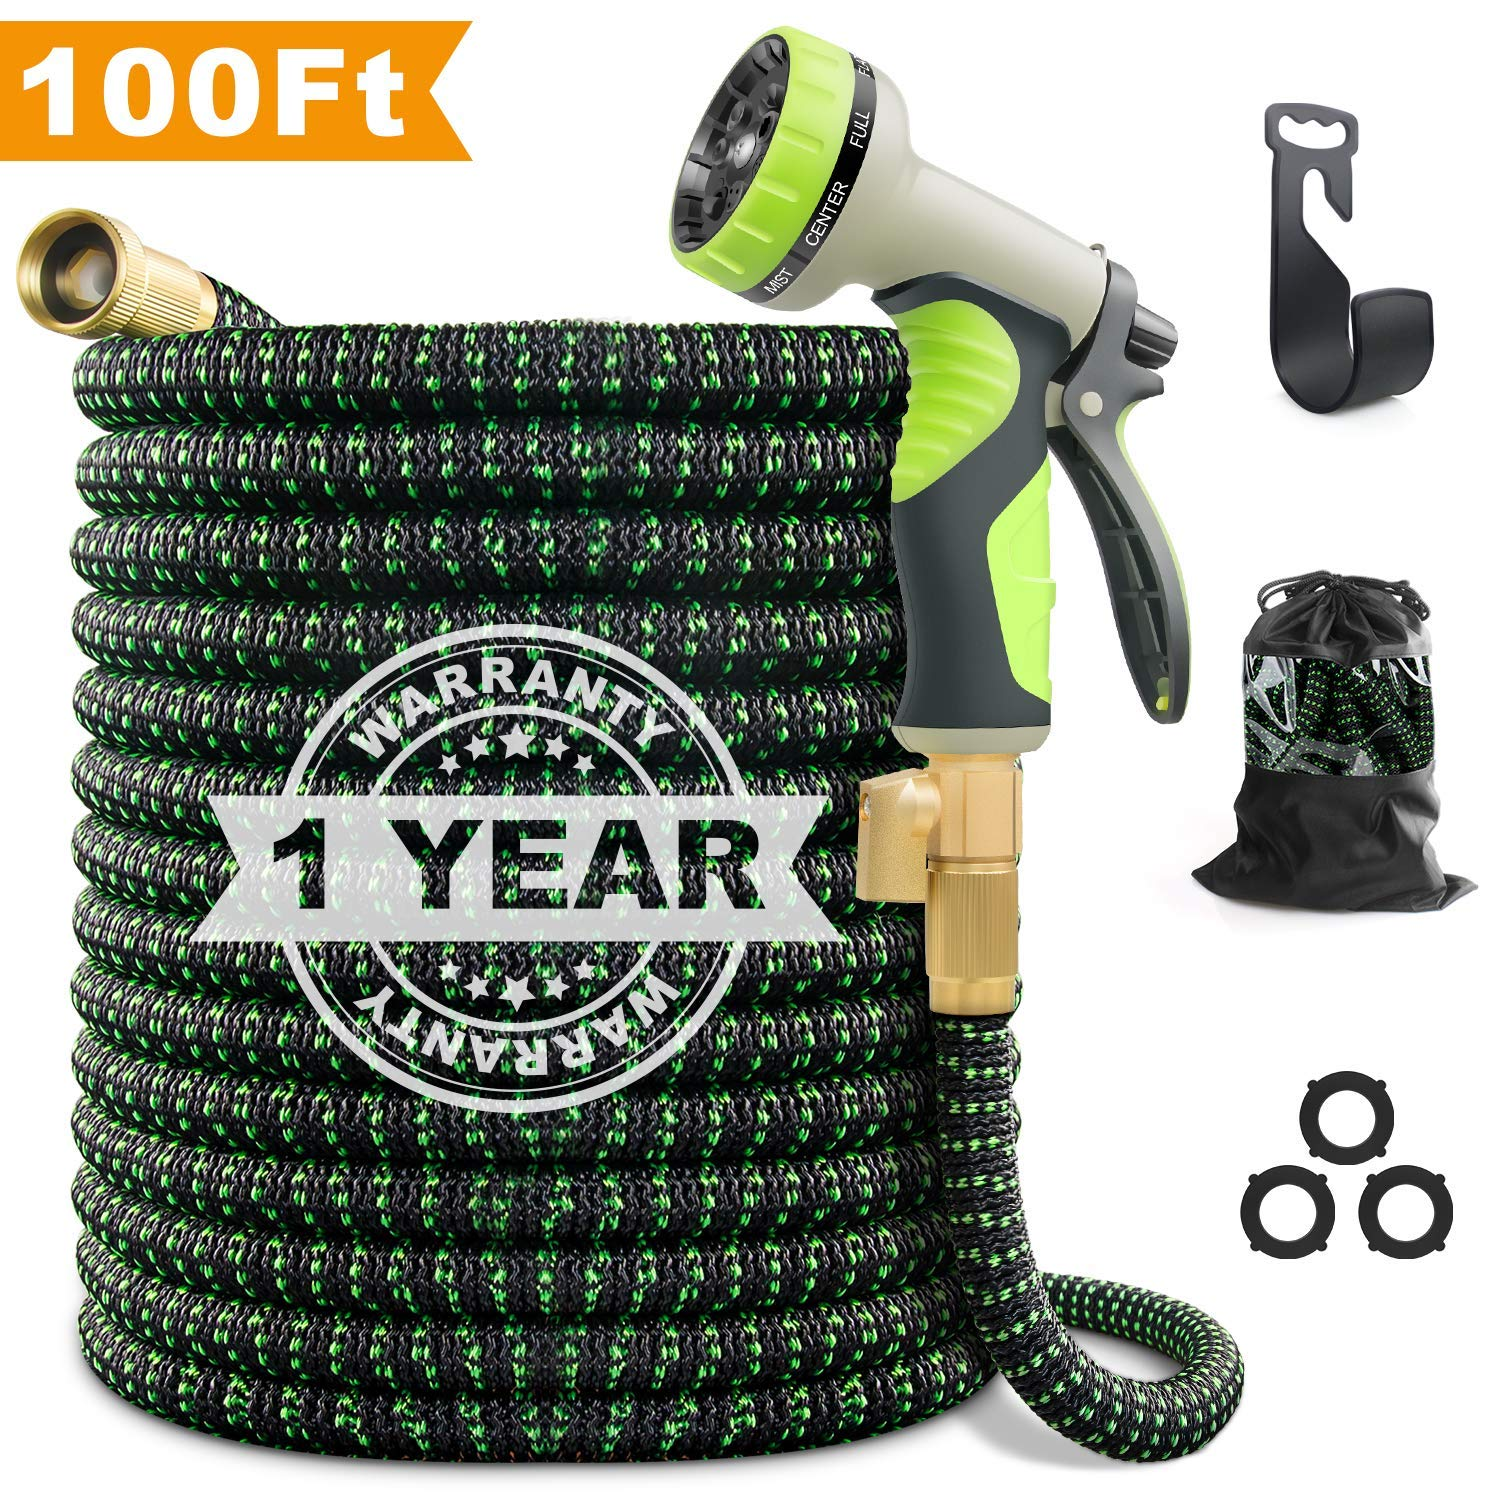 VIENECI 100ft Garden Hose Upgraded Expandable Hose, Durable Flexible Water Hose, 9 Function Spray Hose Nozzle, 3/4'' Solid Brass Connectors, Extra Strength Fabric, Lightweight Expanding Hose